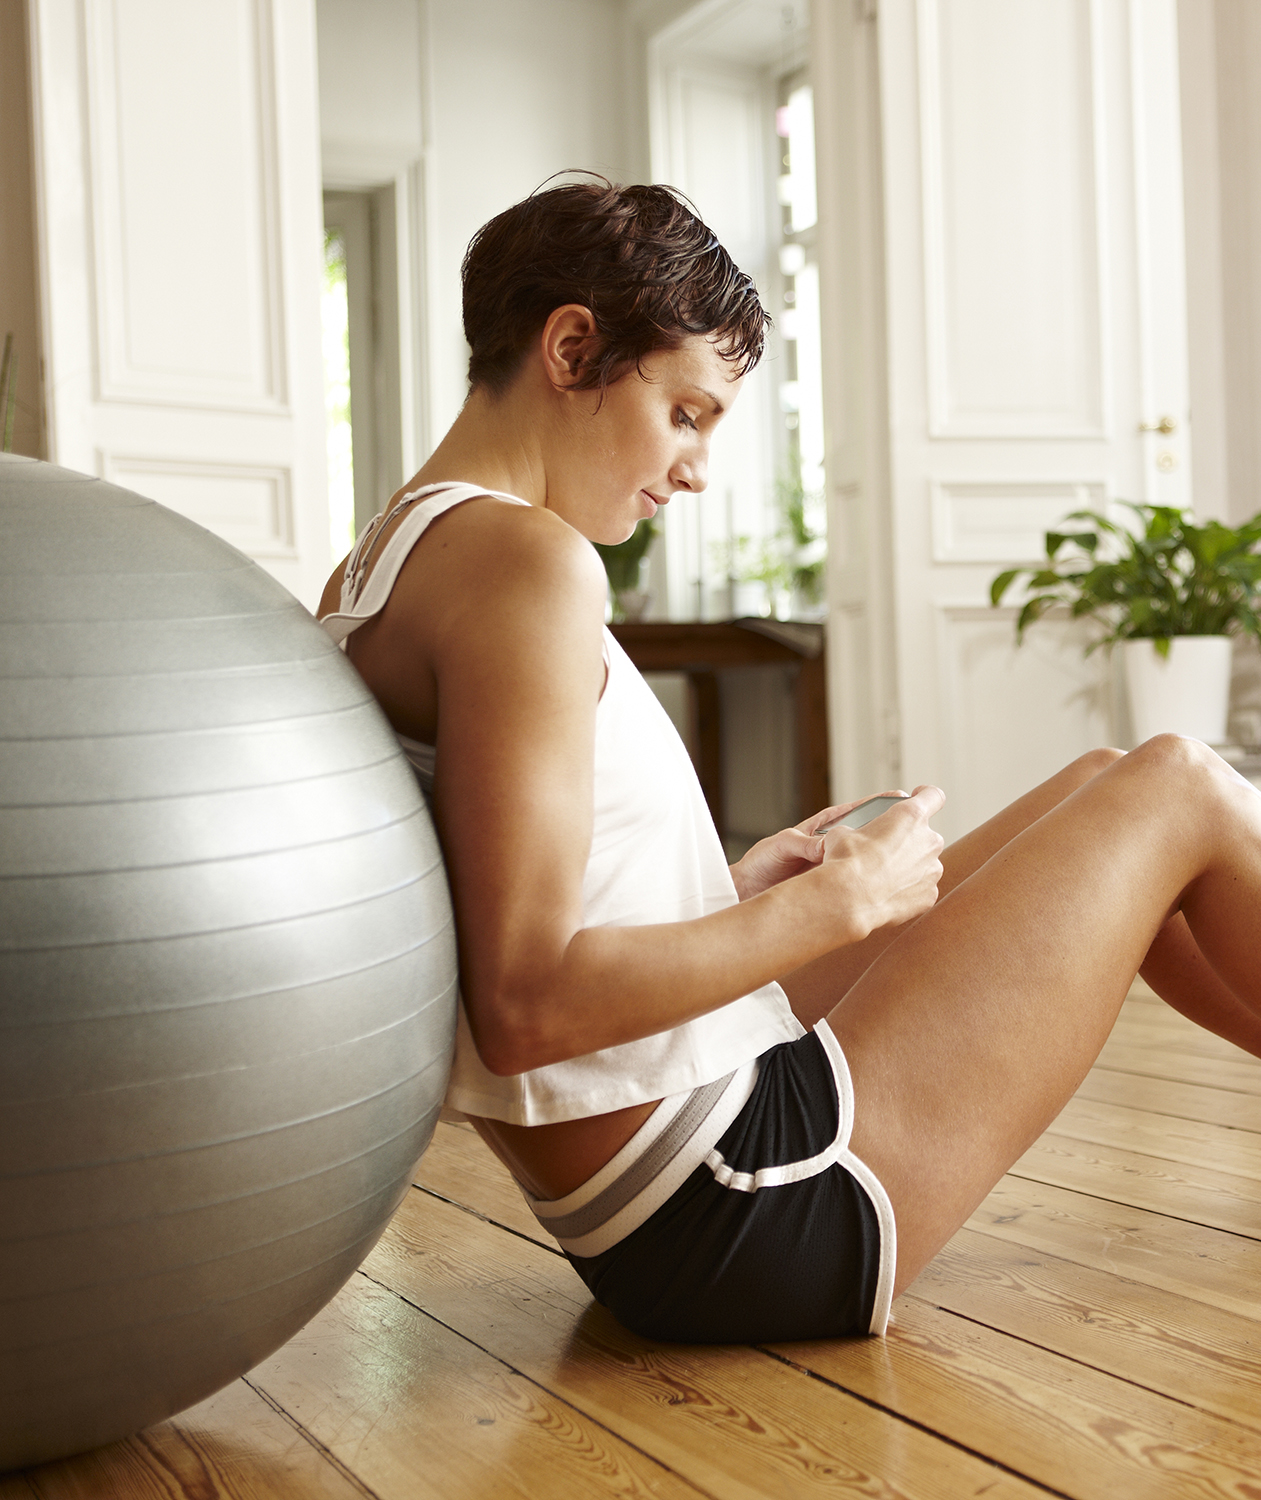 Woman with phone and exercise ball